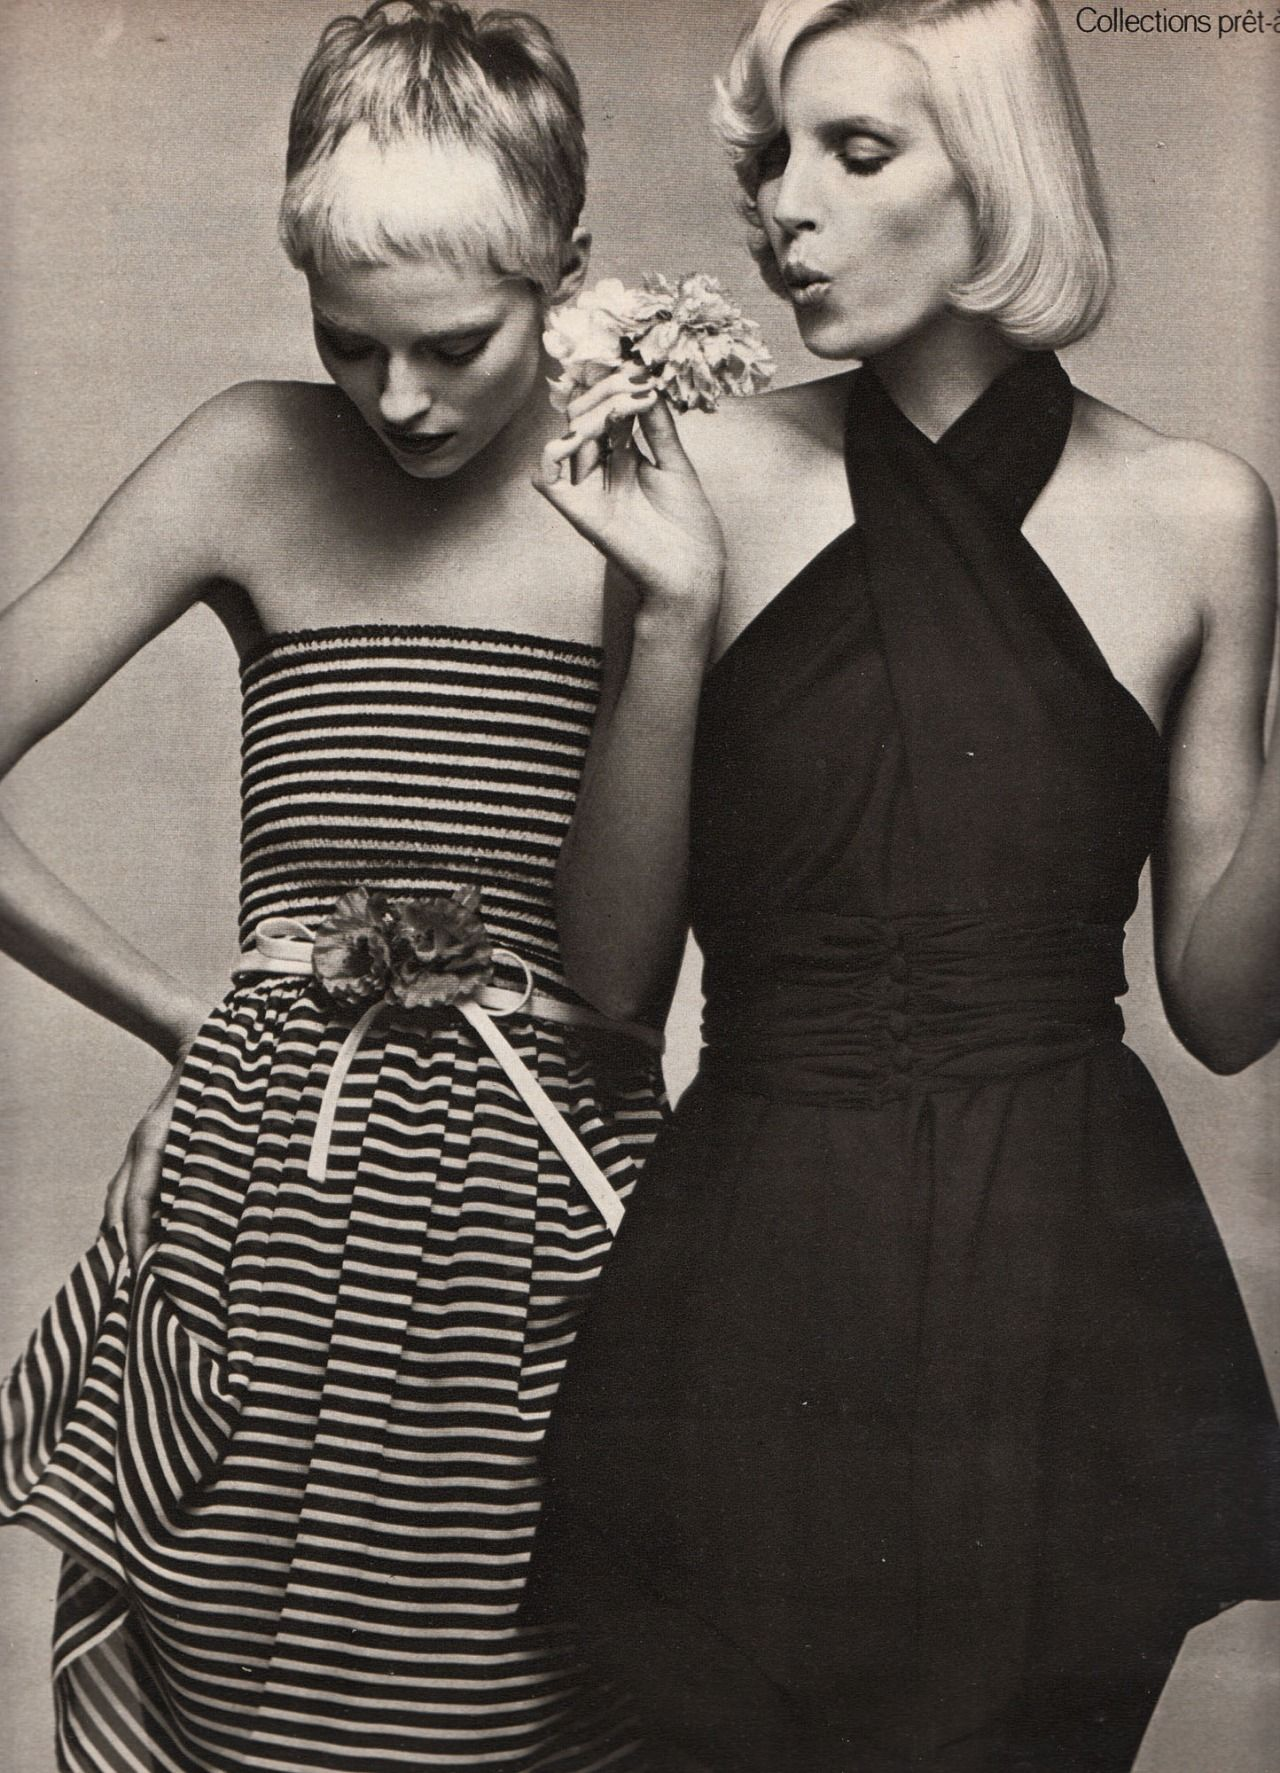 Left: Nina Ricci Right: Karl Lagerfeld for Chloe Marie Claire - March 1972 Photographed by Marc Hispard